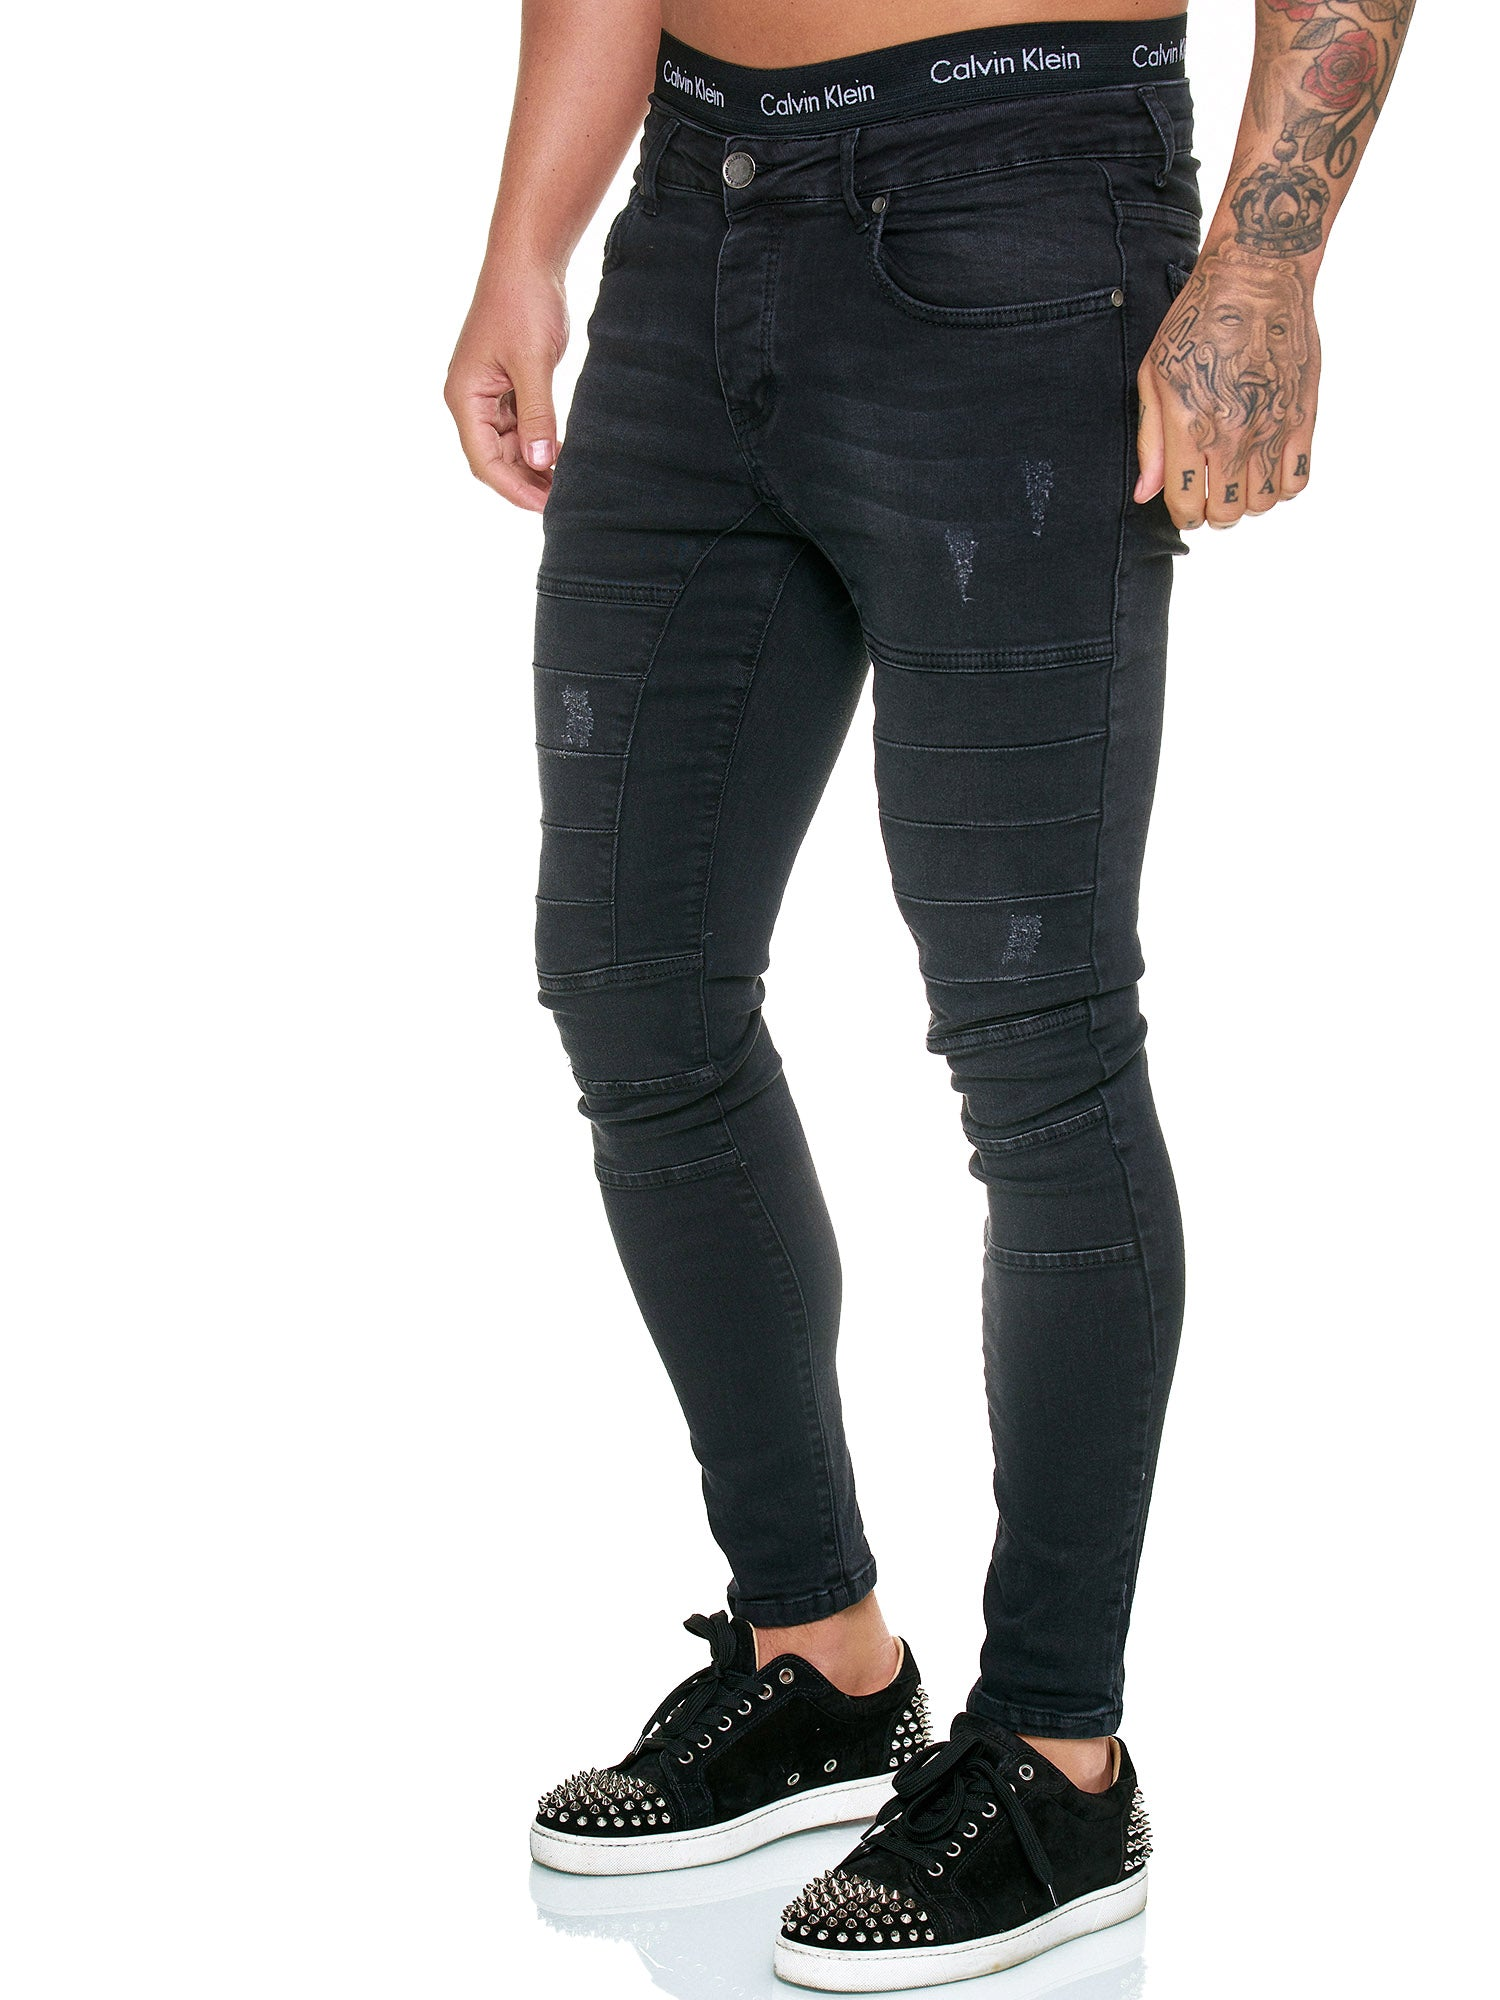 SamBar Distressed Jeans - Black X0034A